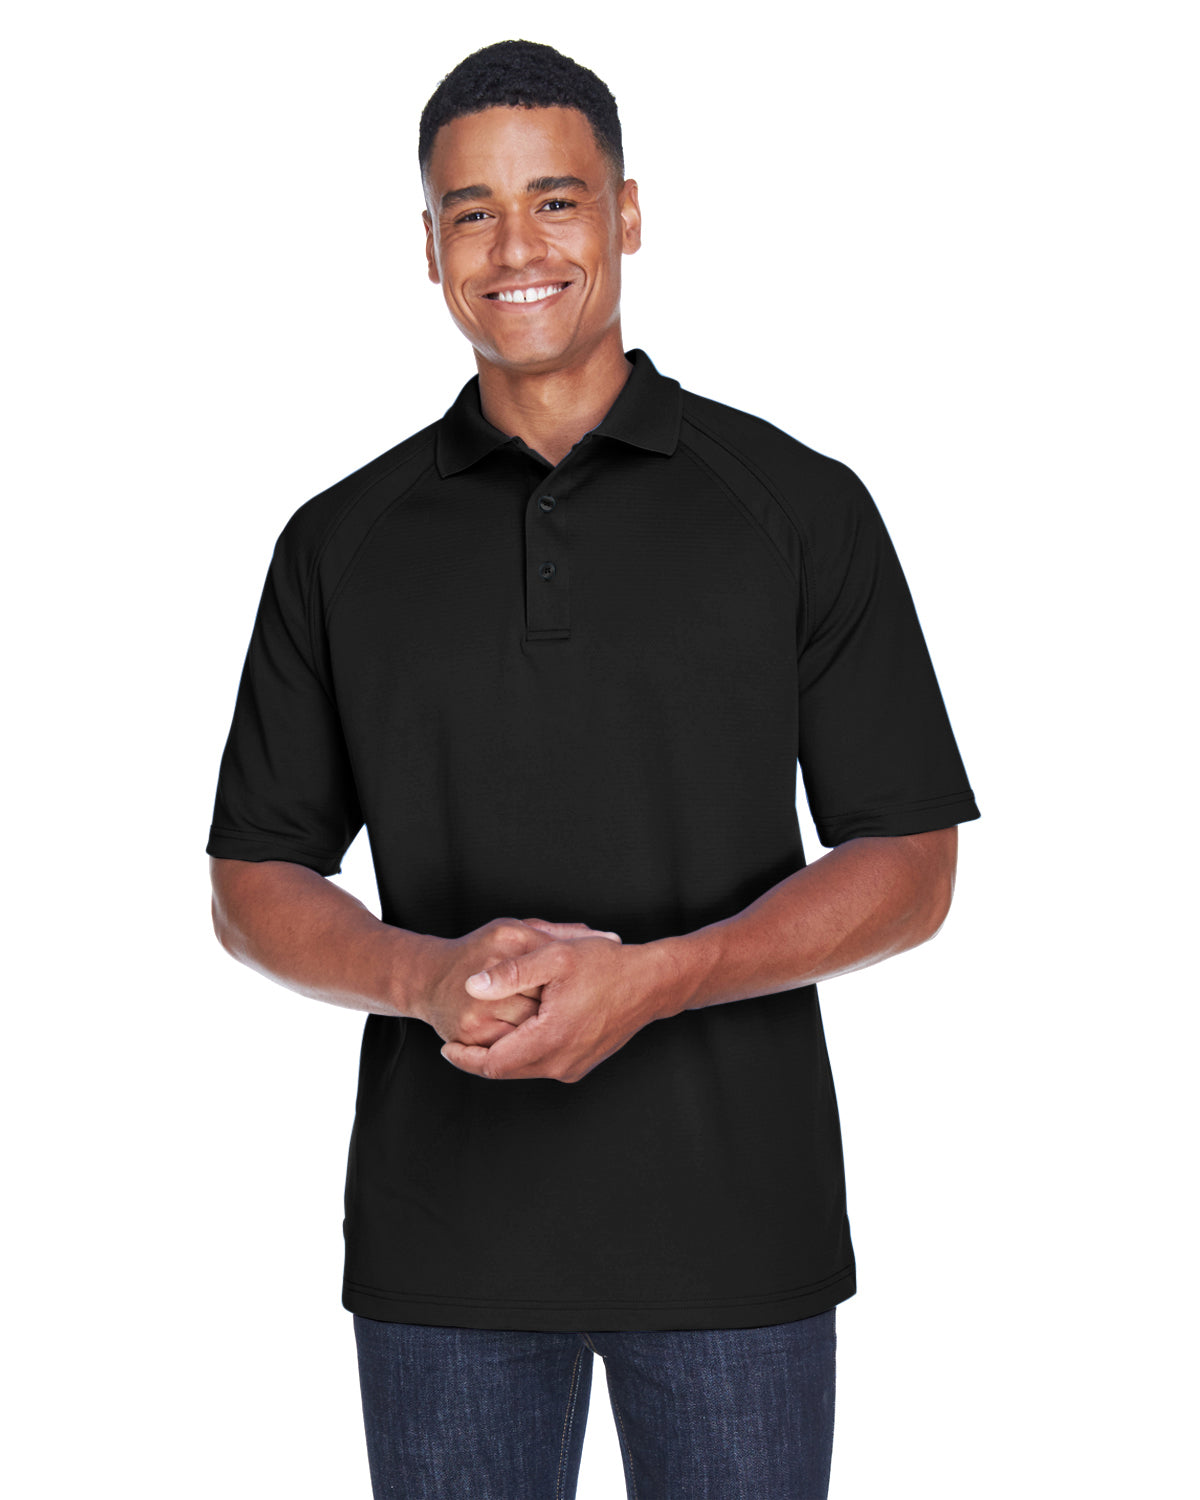 NORTH END EXTREME MEN'S EPERFORMANCE OTTOMAN TEXTURED POLO